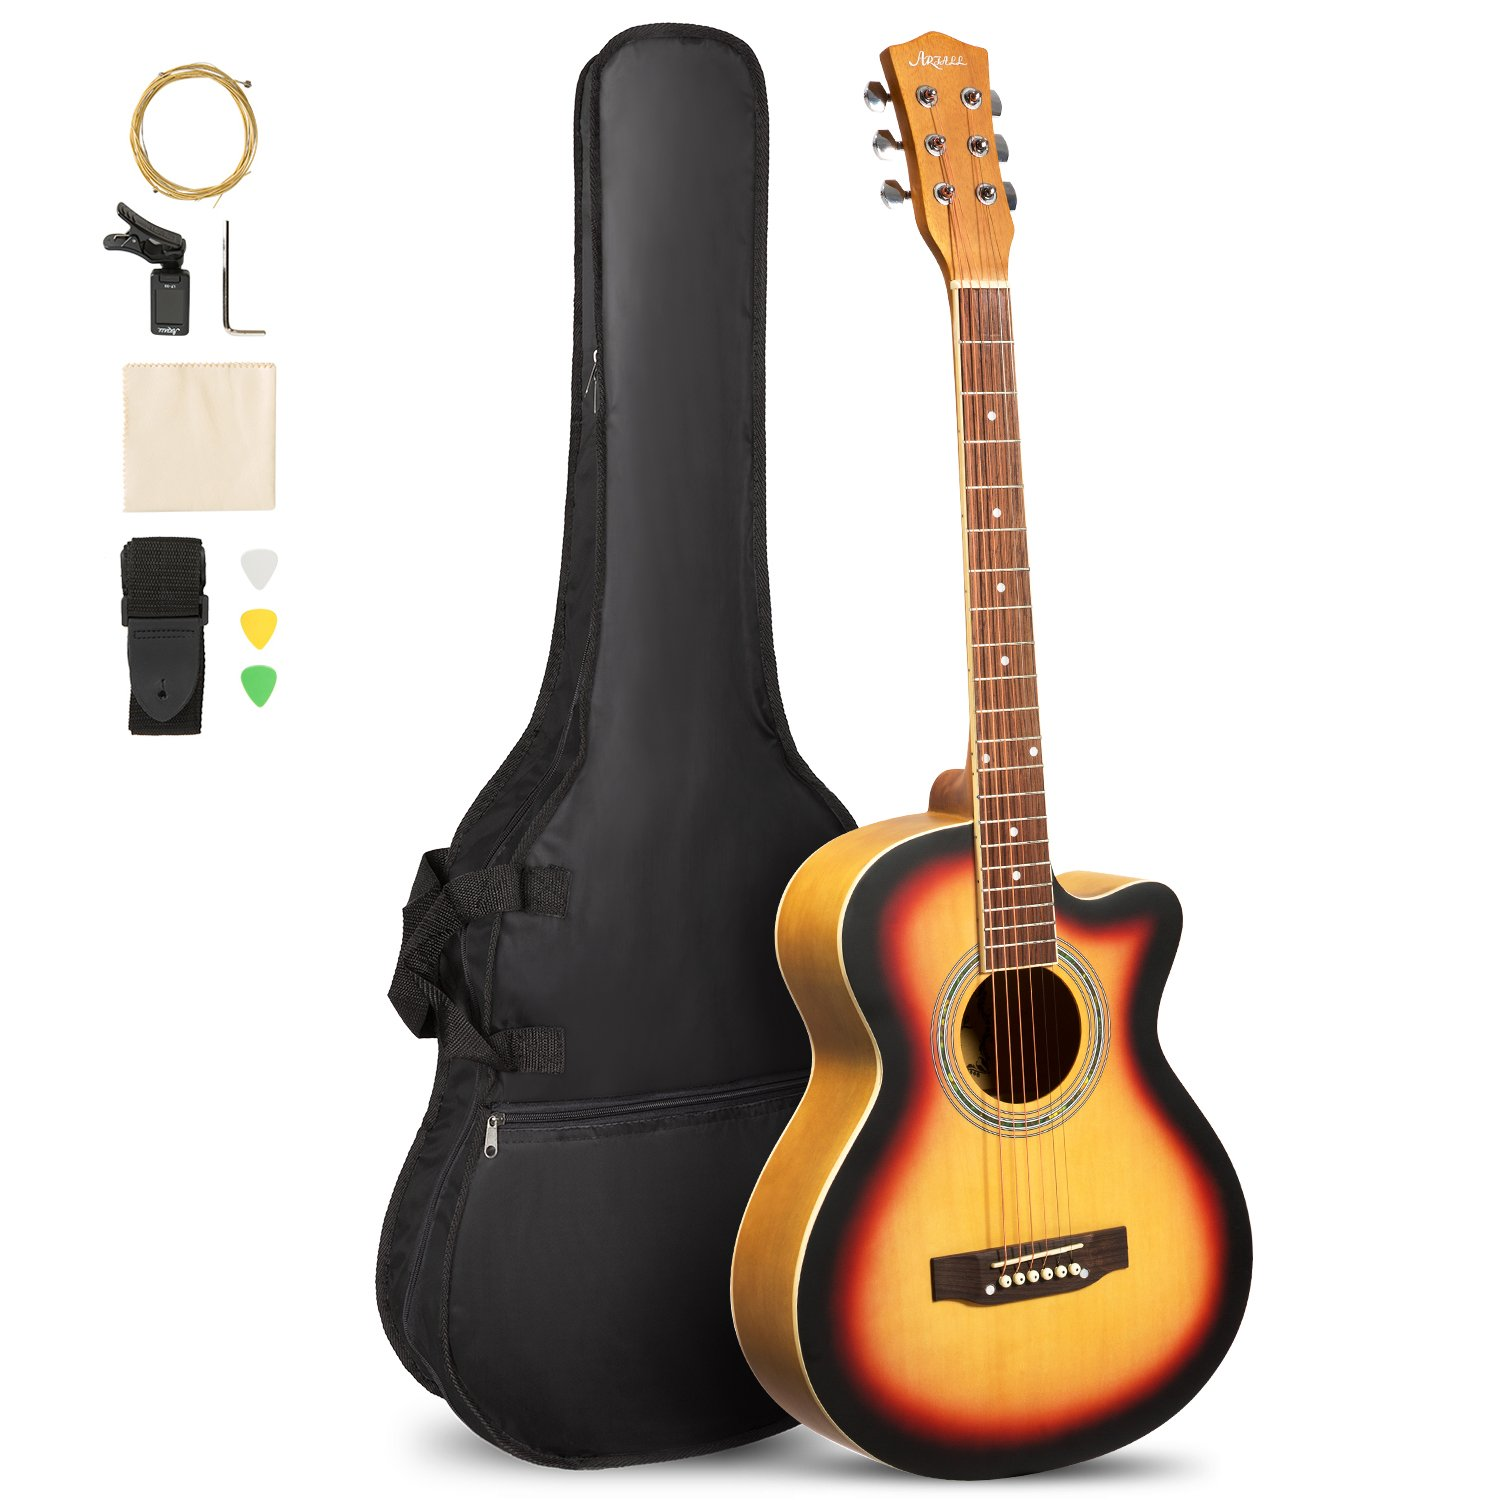 ARTALL 39 Inch Handcrafted Acoustic Cutaway Guitar Beginner Kit with Gig bag & Accessories, Matte Sunset